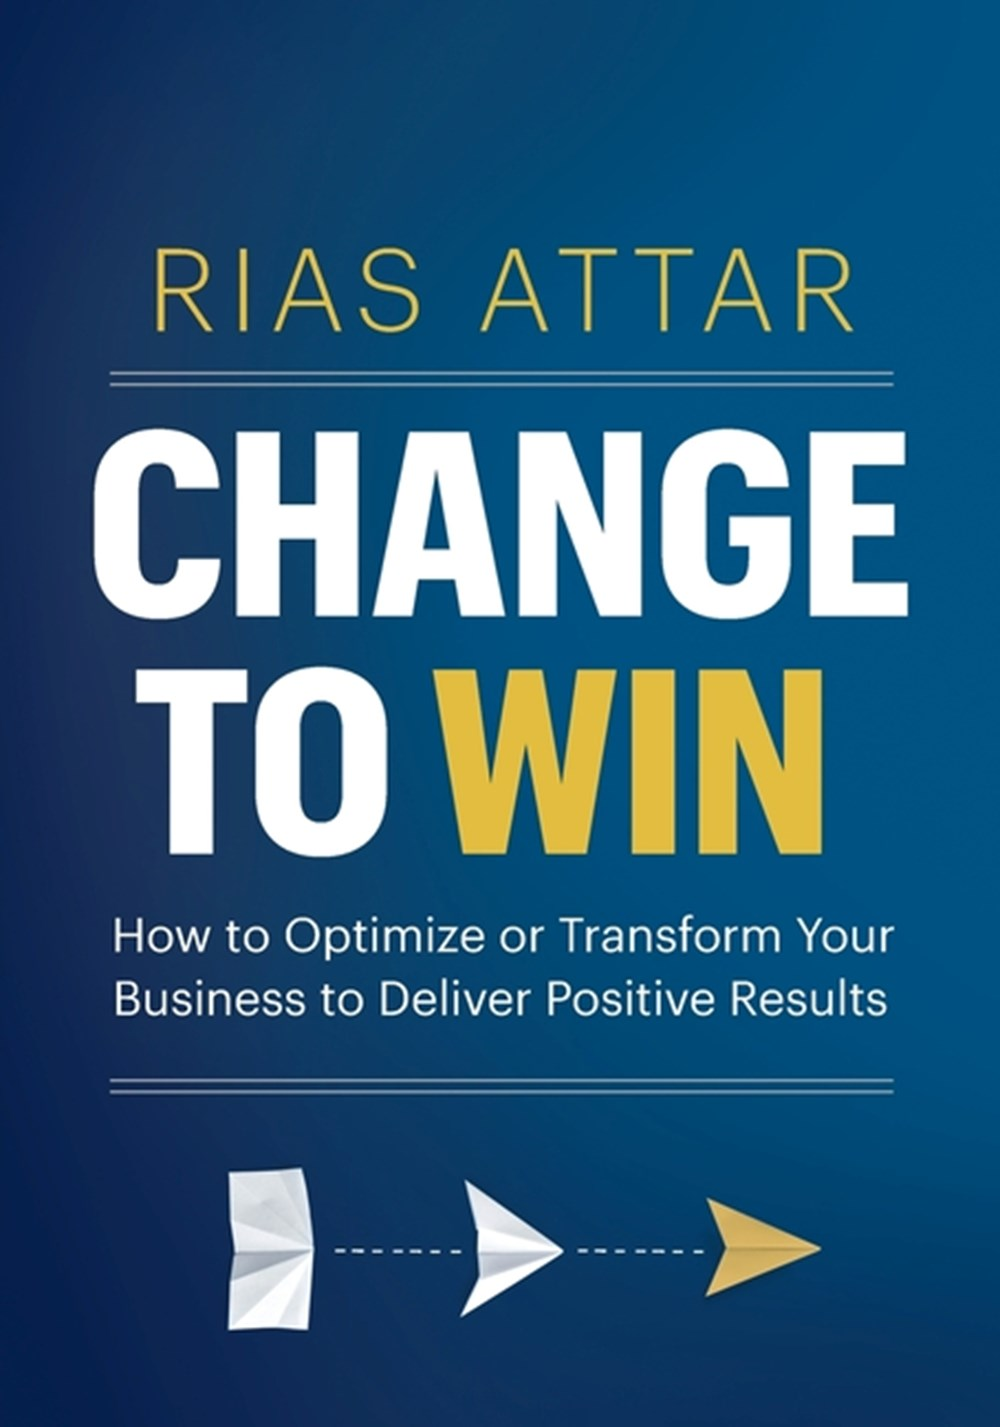 Change to Win: How to Optimize or Transform Your Business to Deliver Positive Results